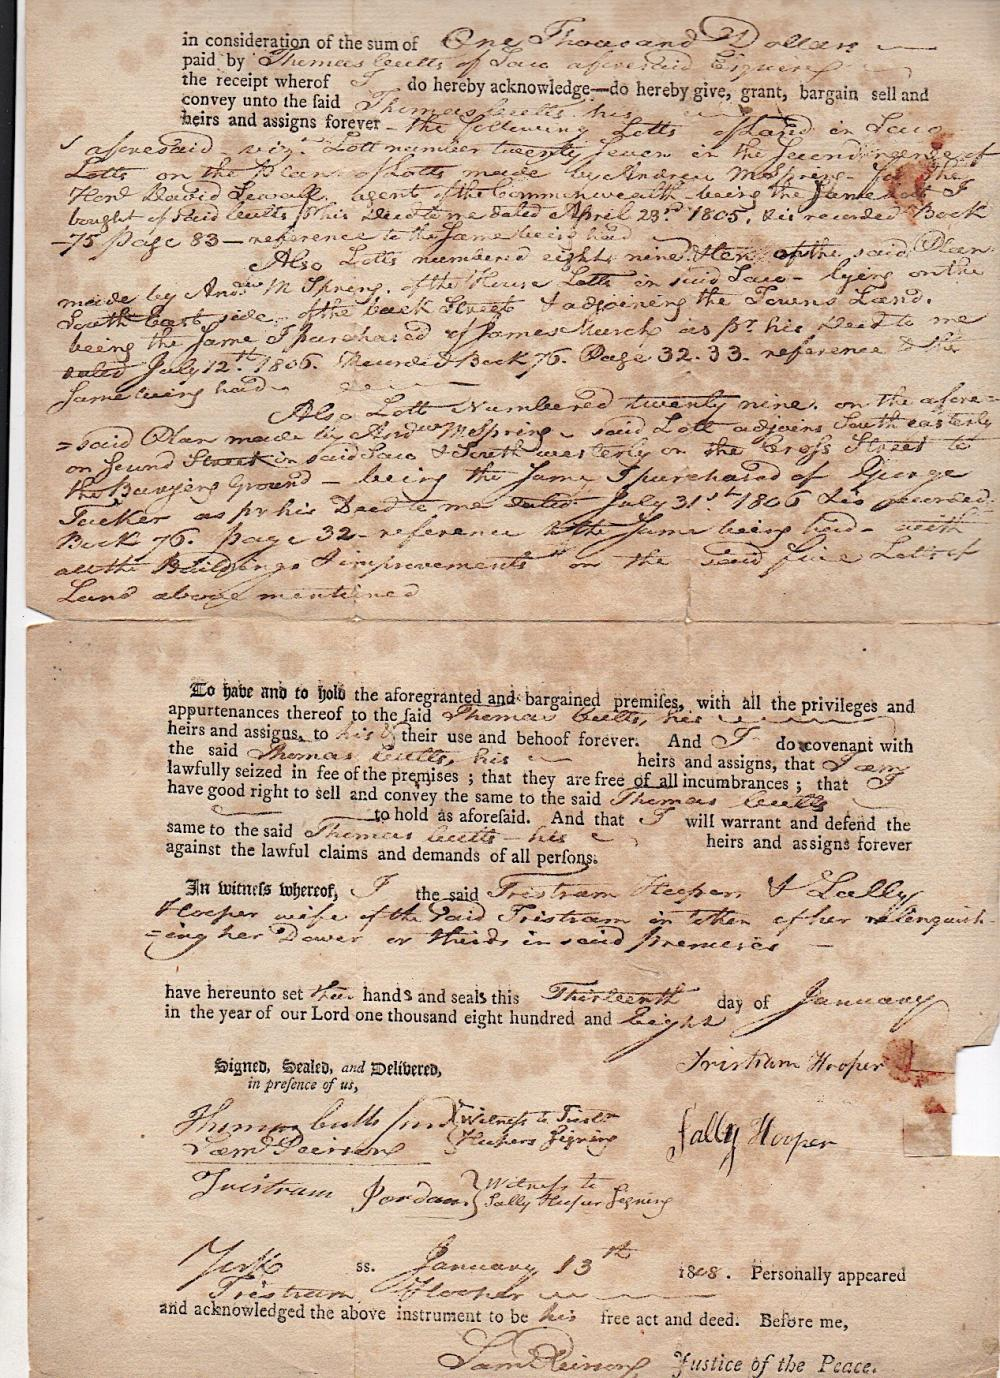 1808 SACO, MAINE - Signed by John Frost and Tristram Jordan